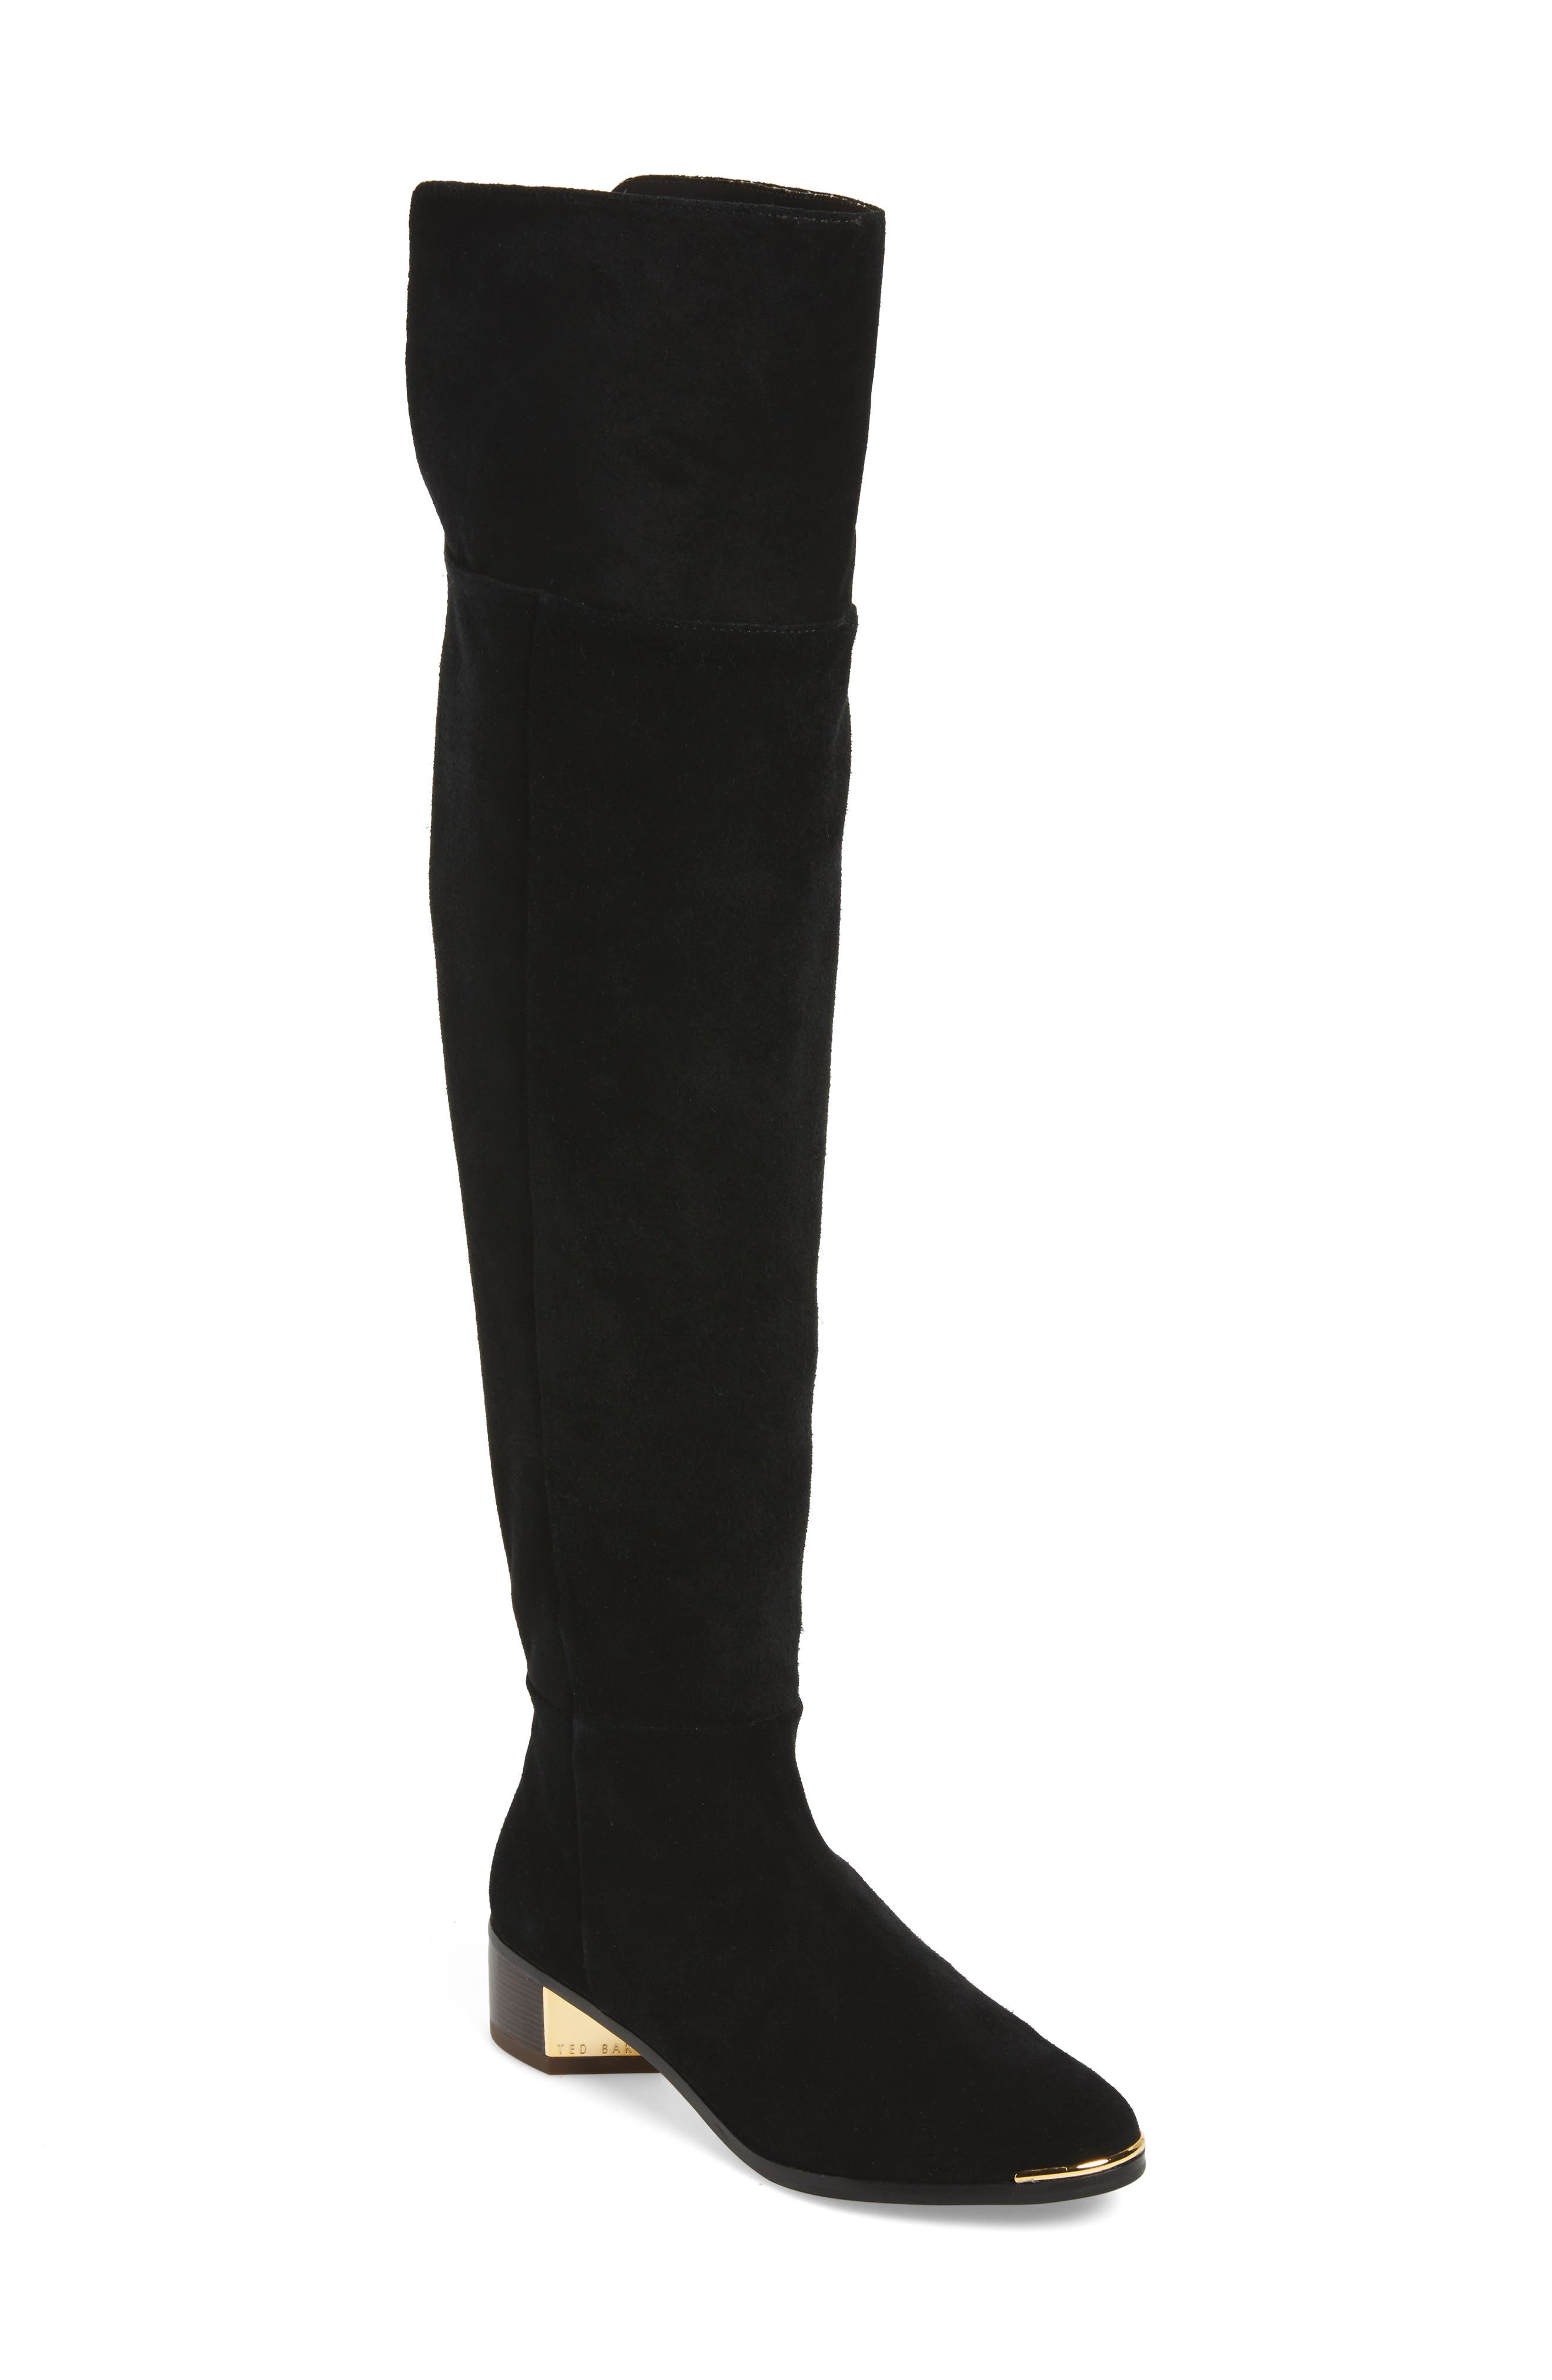 Nayomie Over the Knee Boot,                         Main,                         color, Black Suede